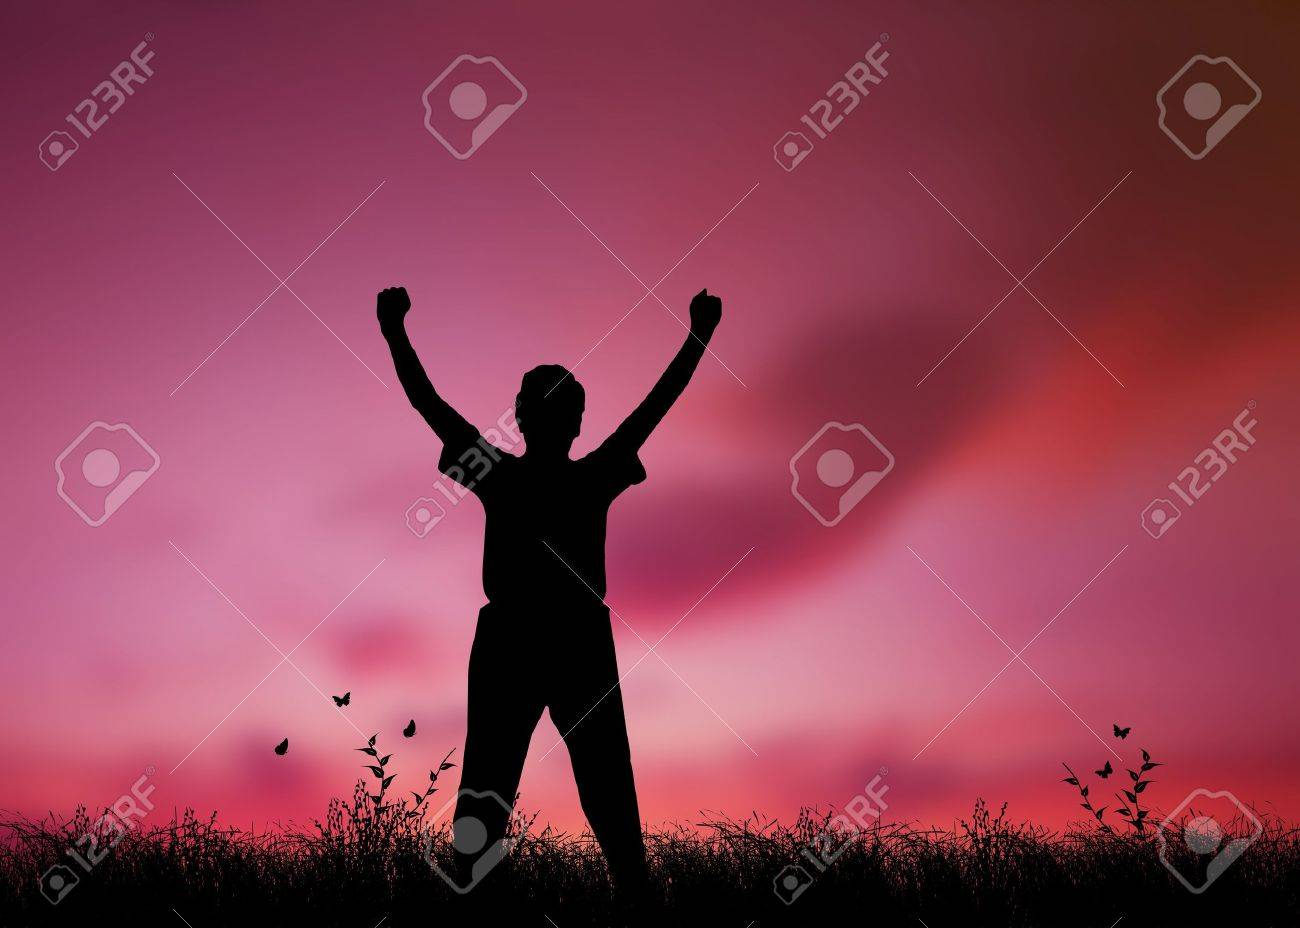 High resolution graphic of a man silhouette with his arms raised in worship - 9616509